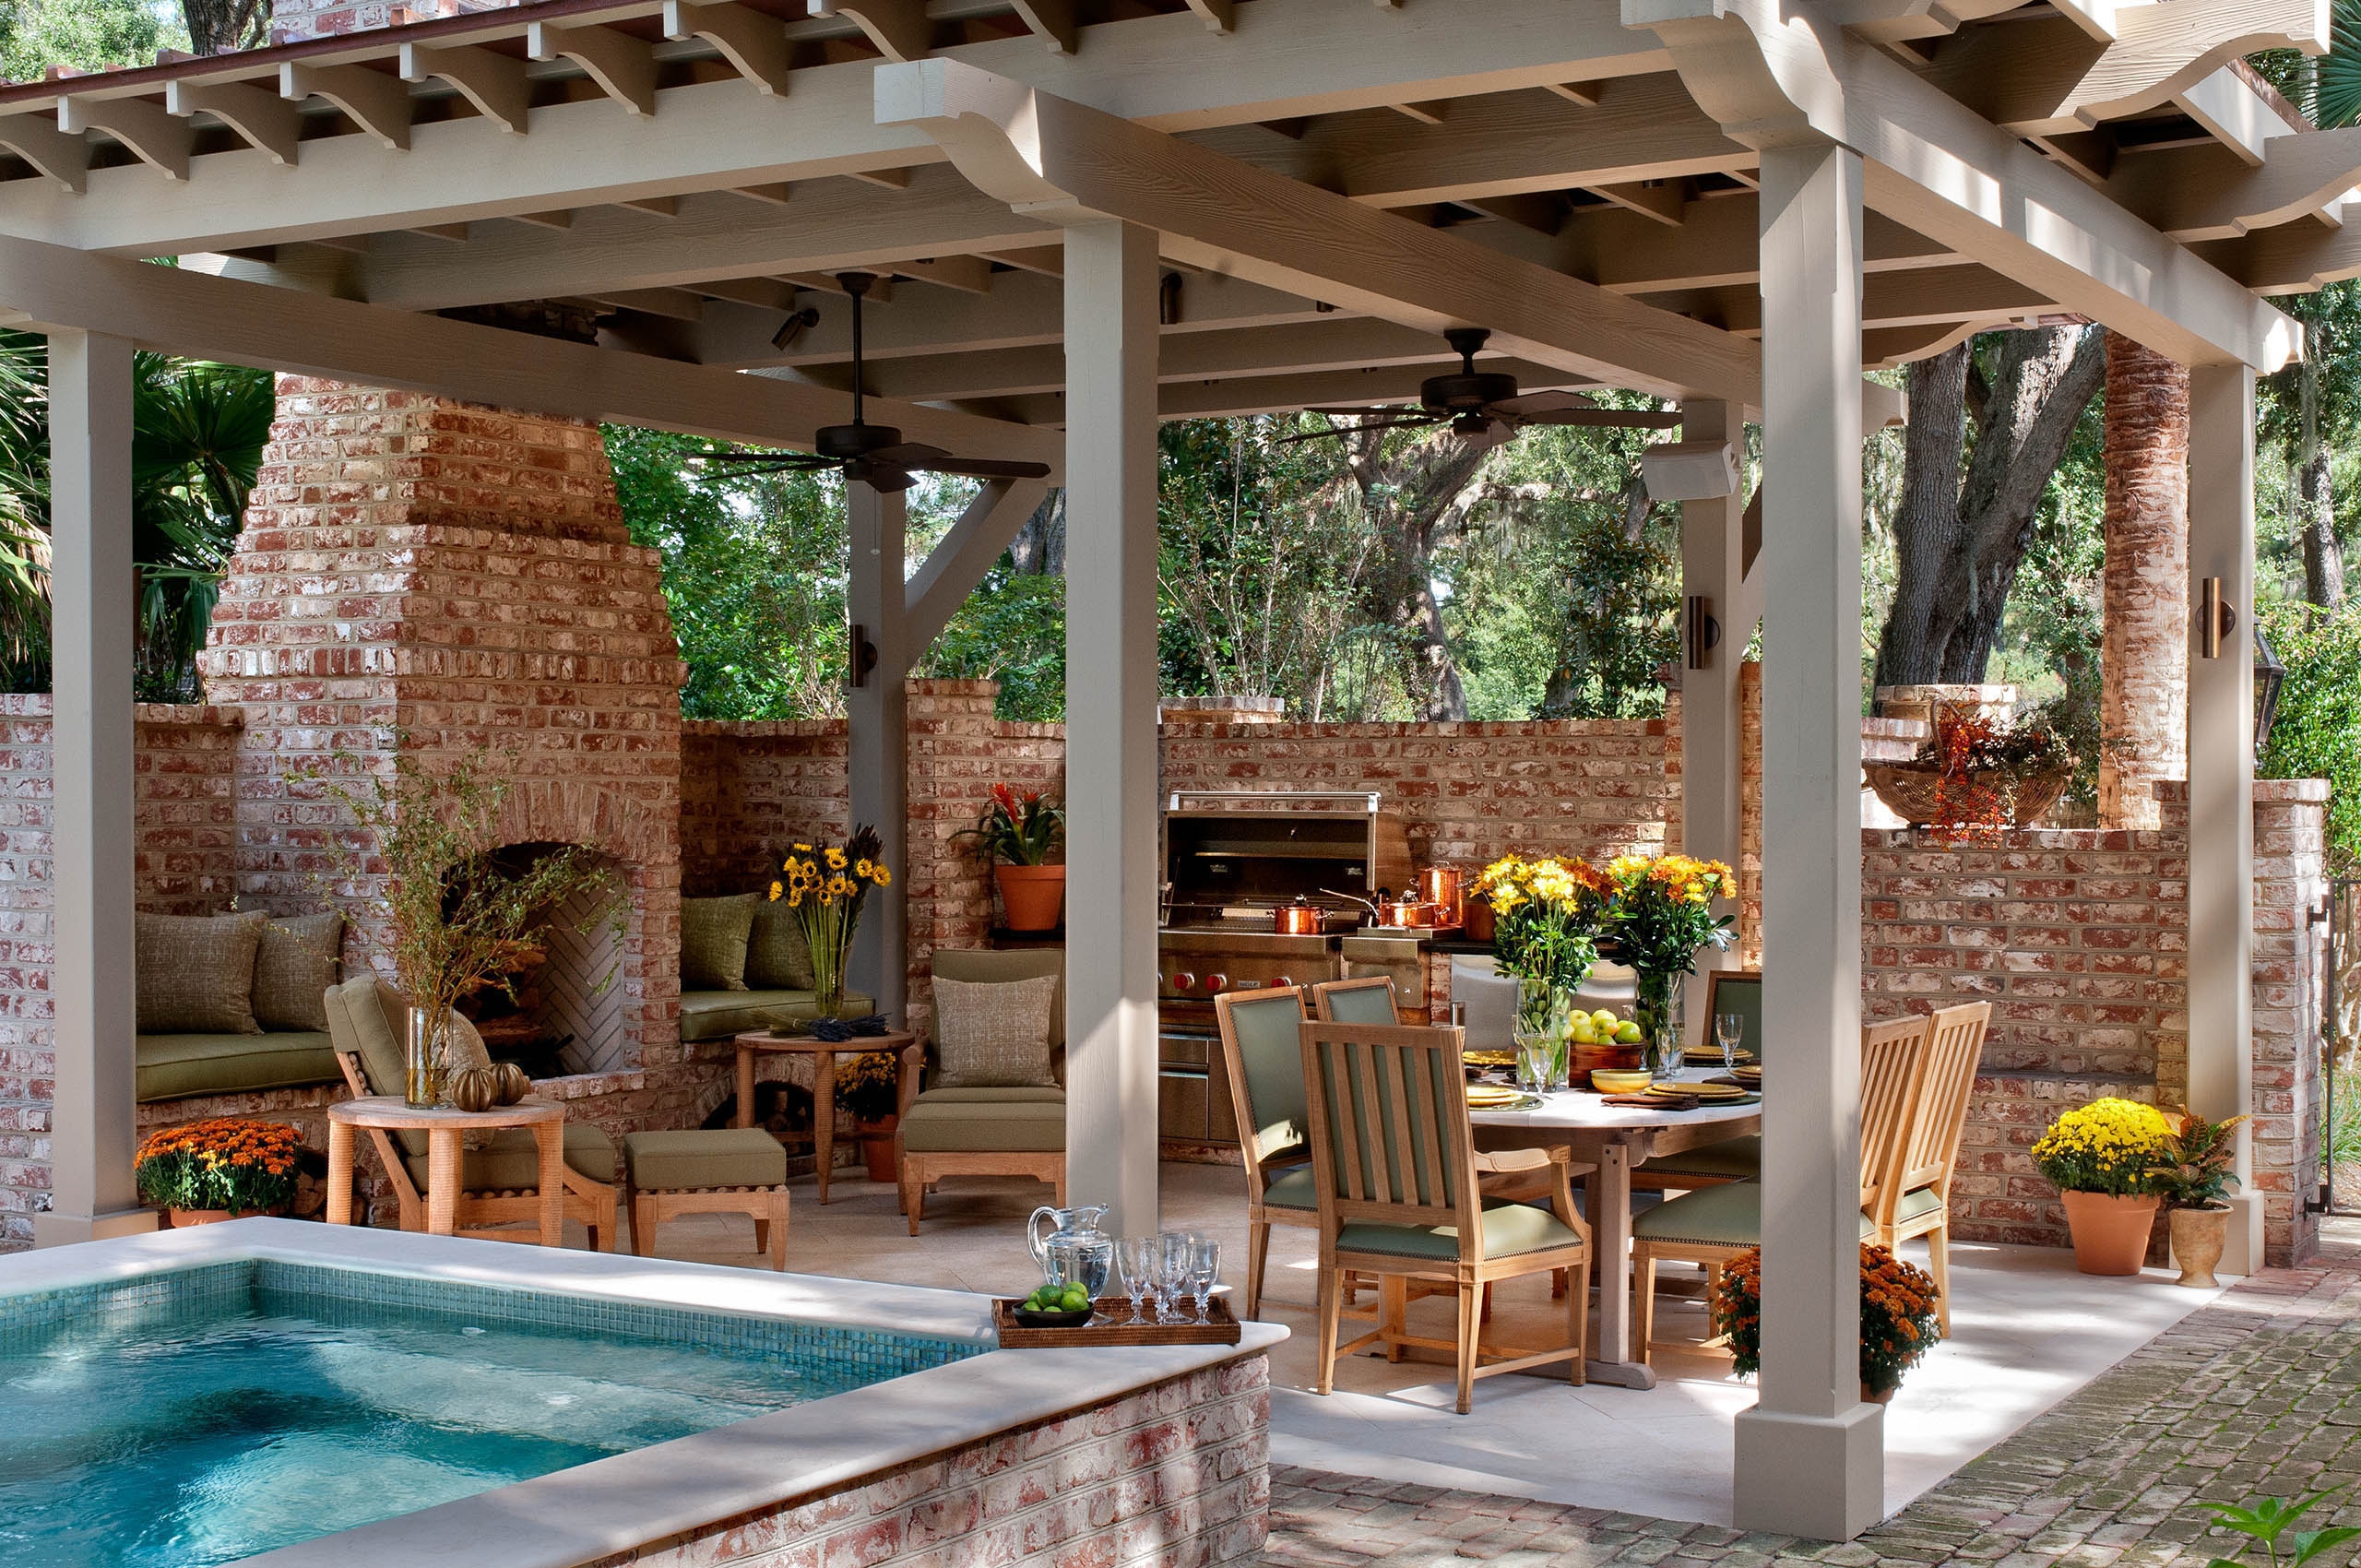 South Carolina Residence Outdoor Dining, ForrestPerkins Design Associates